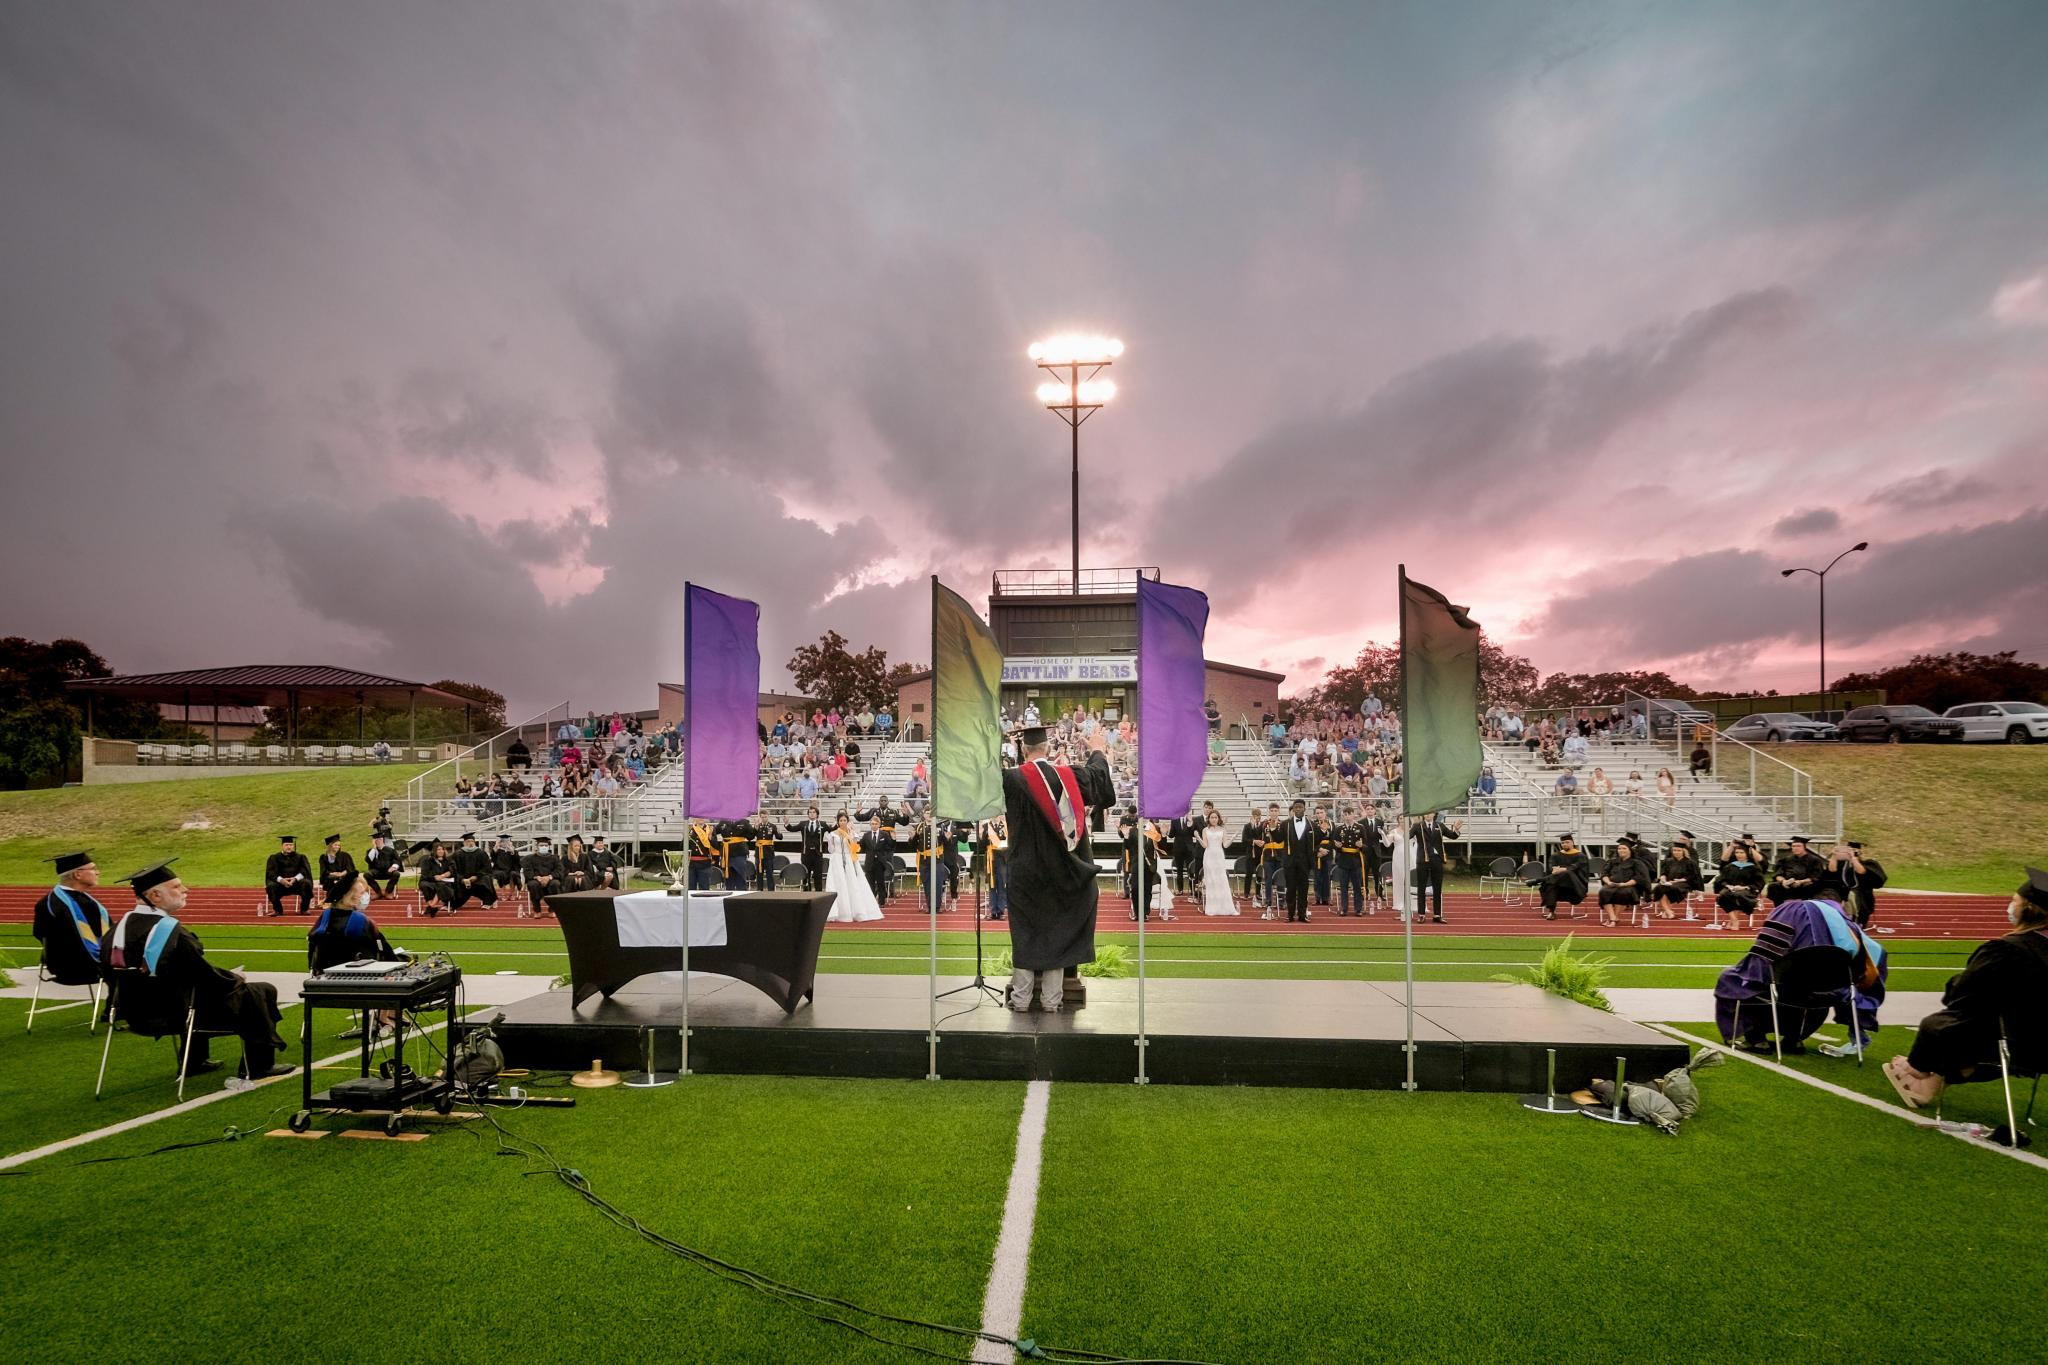 Col. Max Smith, a member of the Academy faculty, gives the Senior Class Blessing as the sun sets behind the stadium.